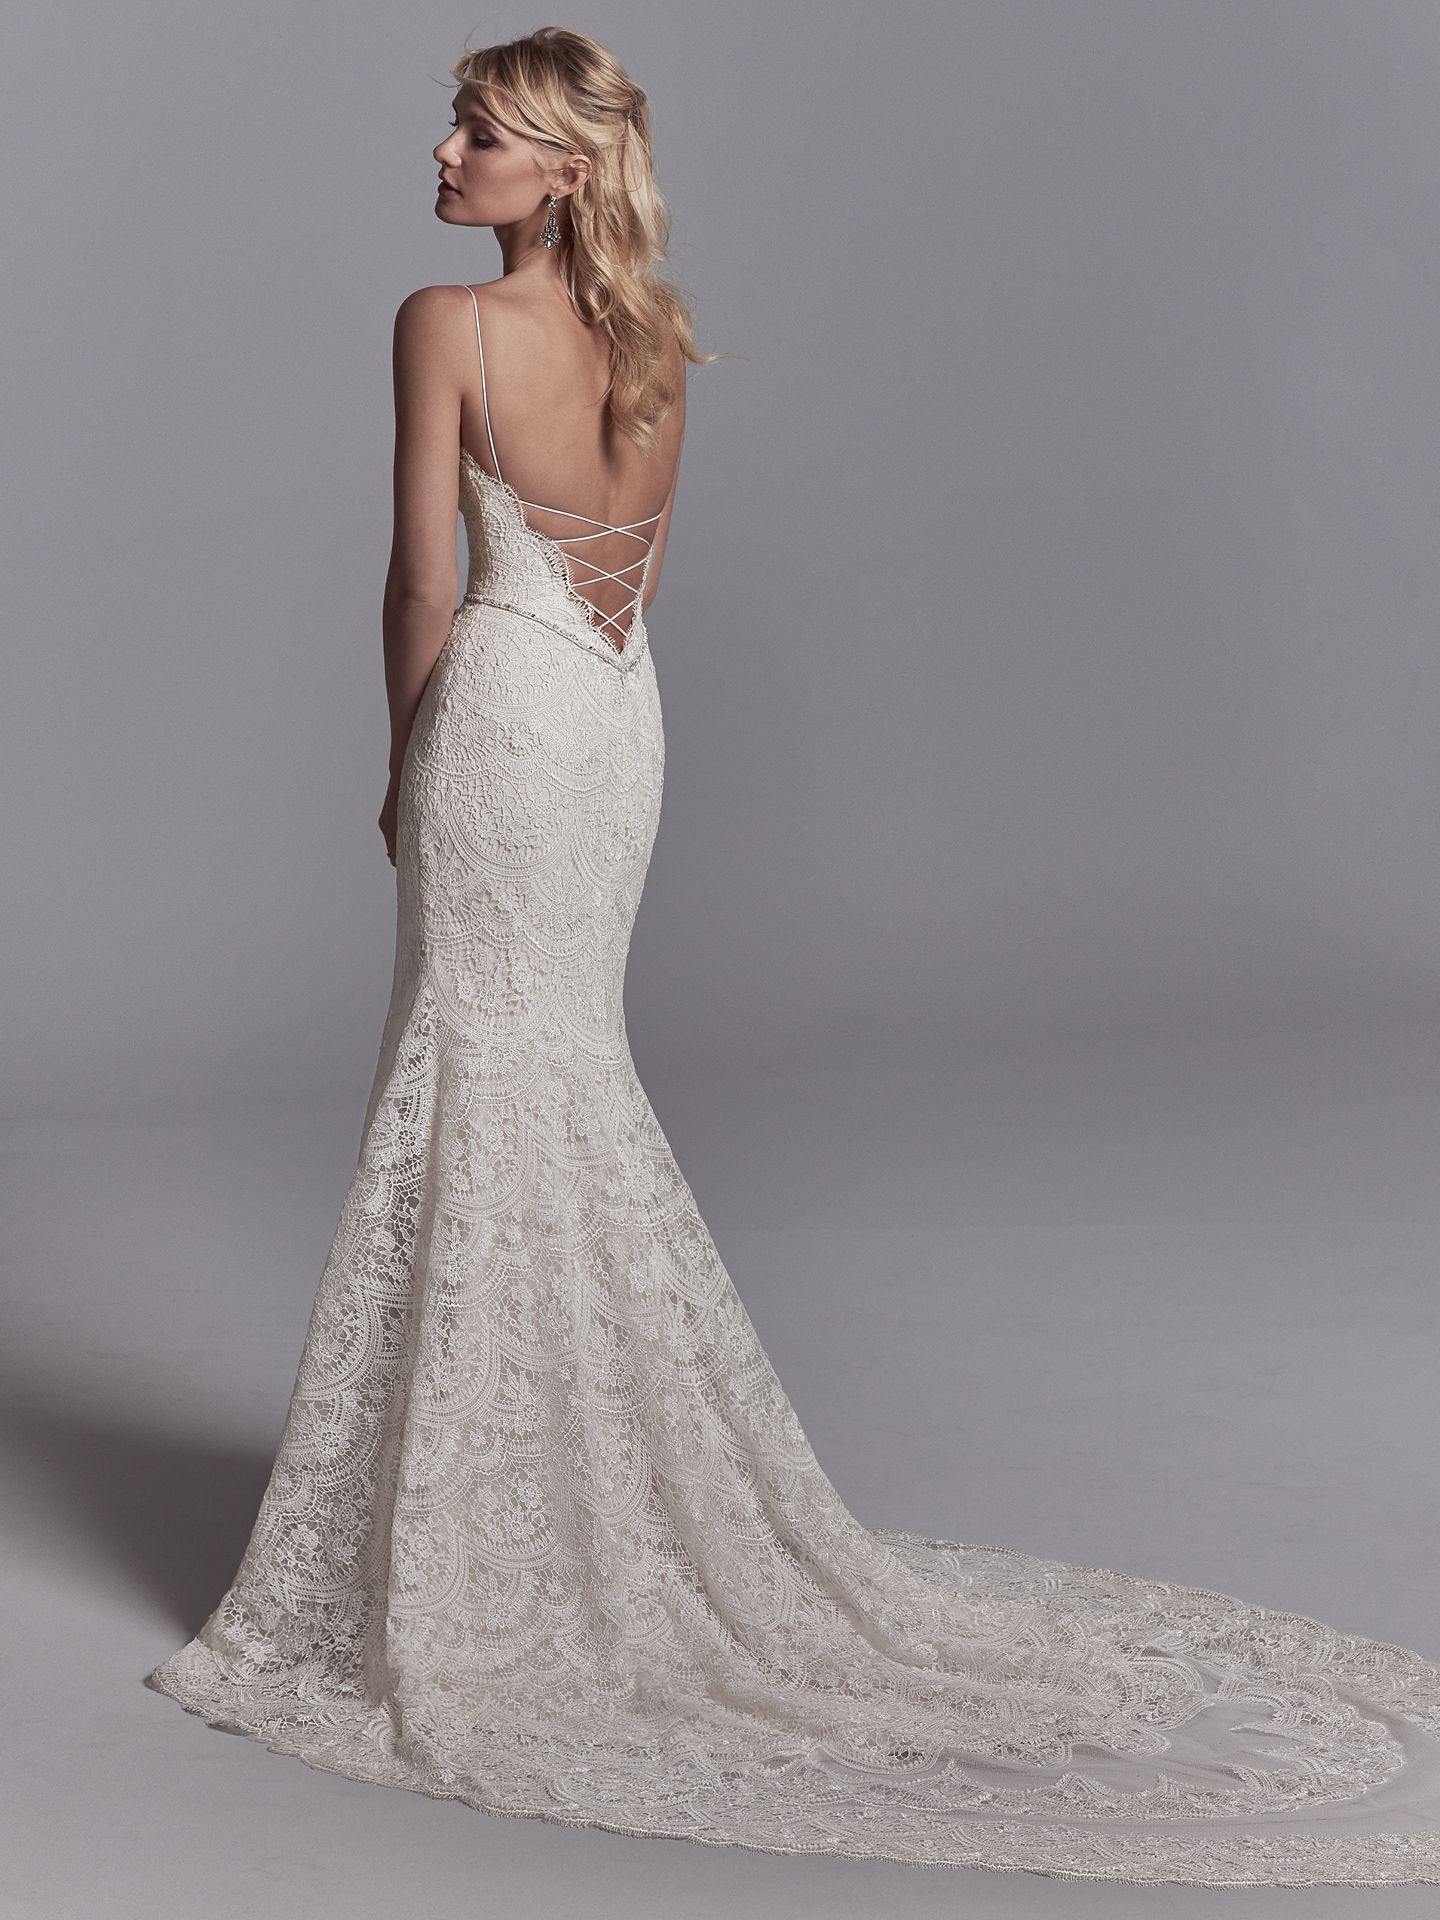 15 Gorgeous Statement-Back Gowns for the Stylish Bride - Unique wedding dress with statement back by Sottero and Midgley